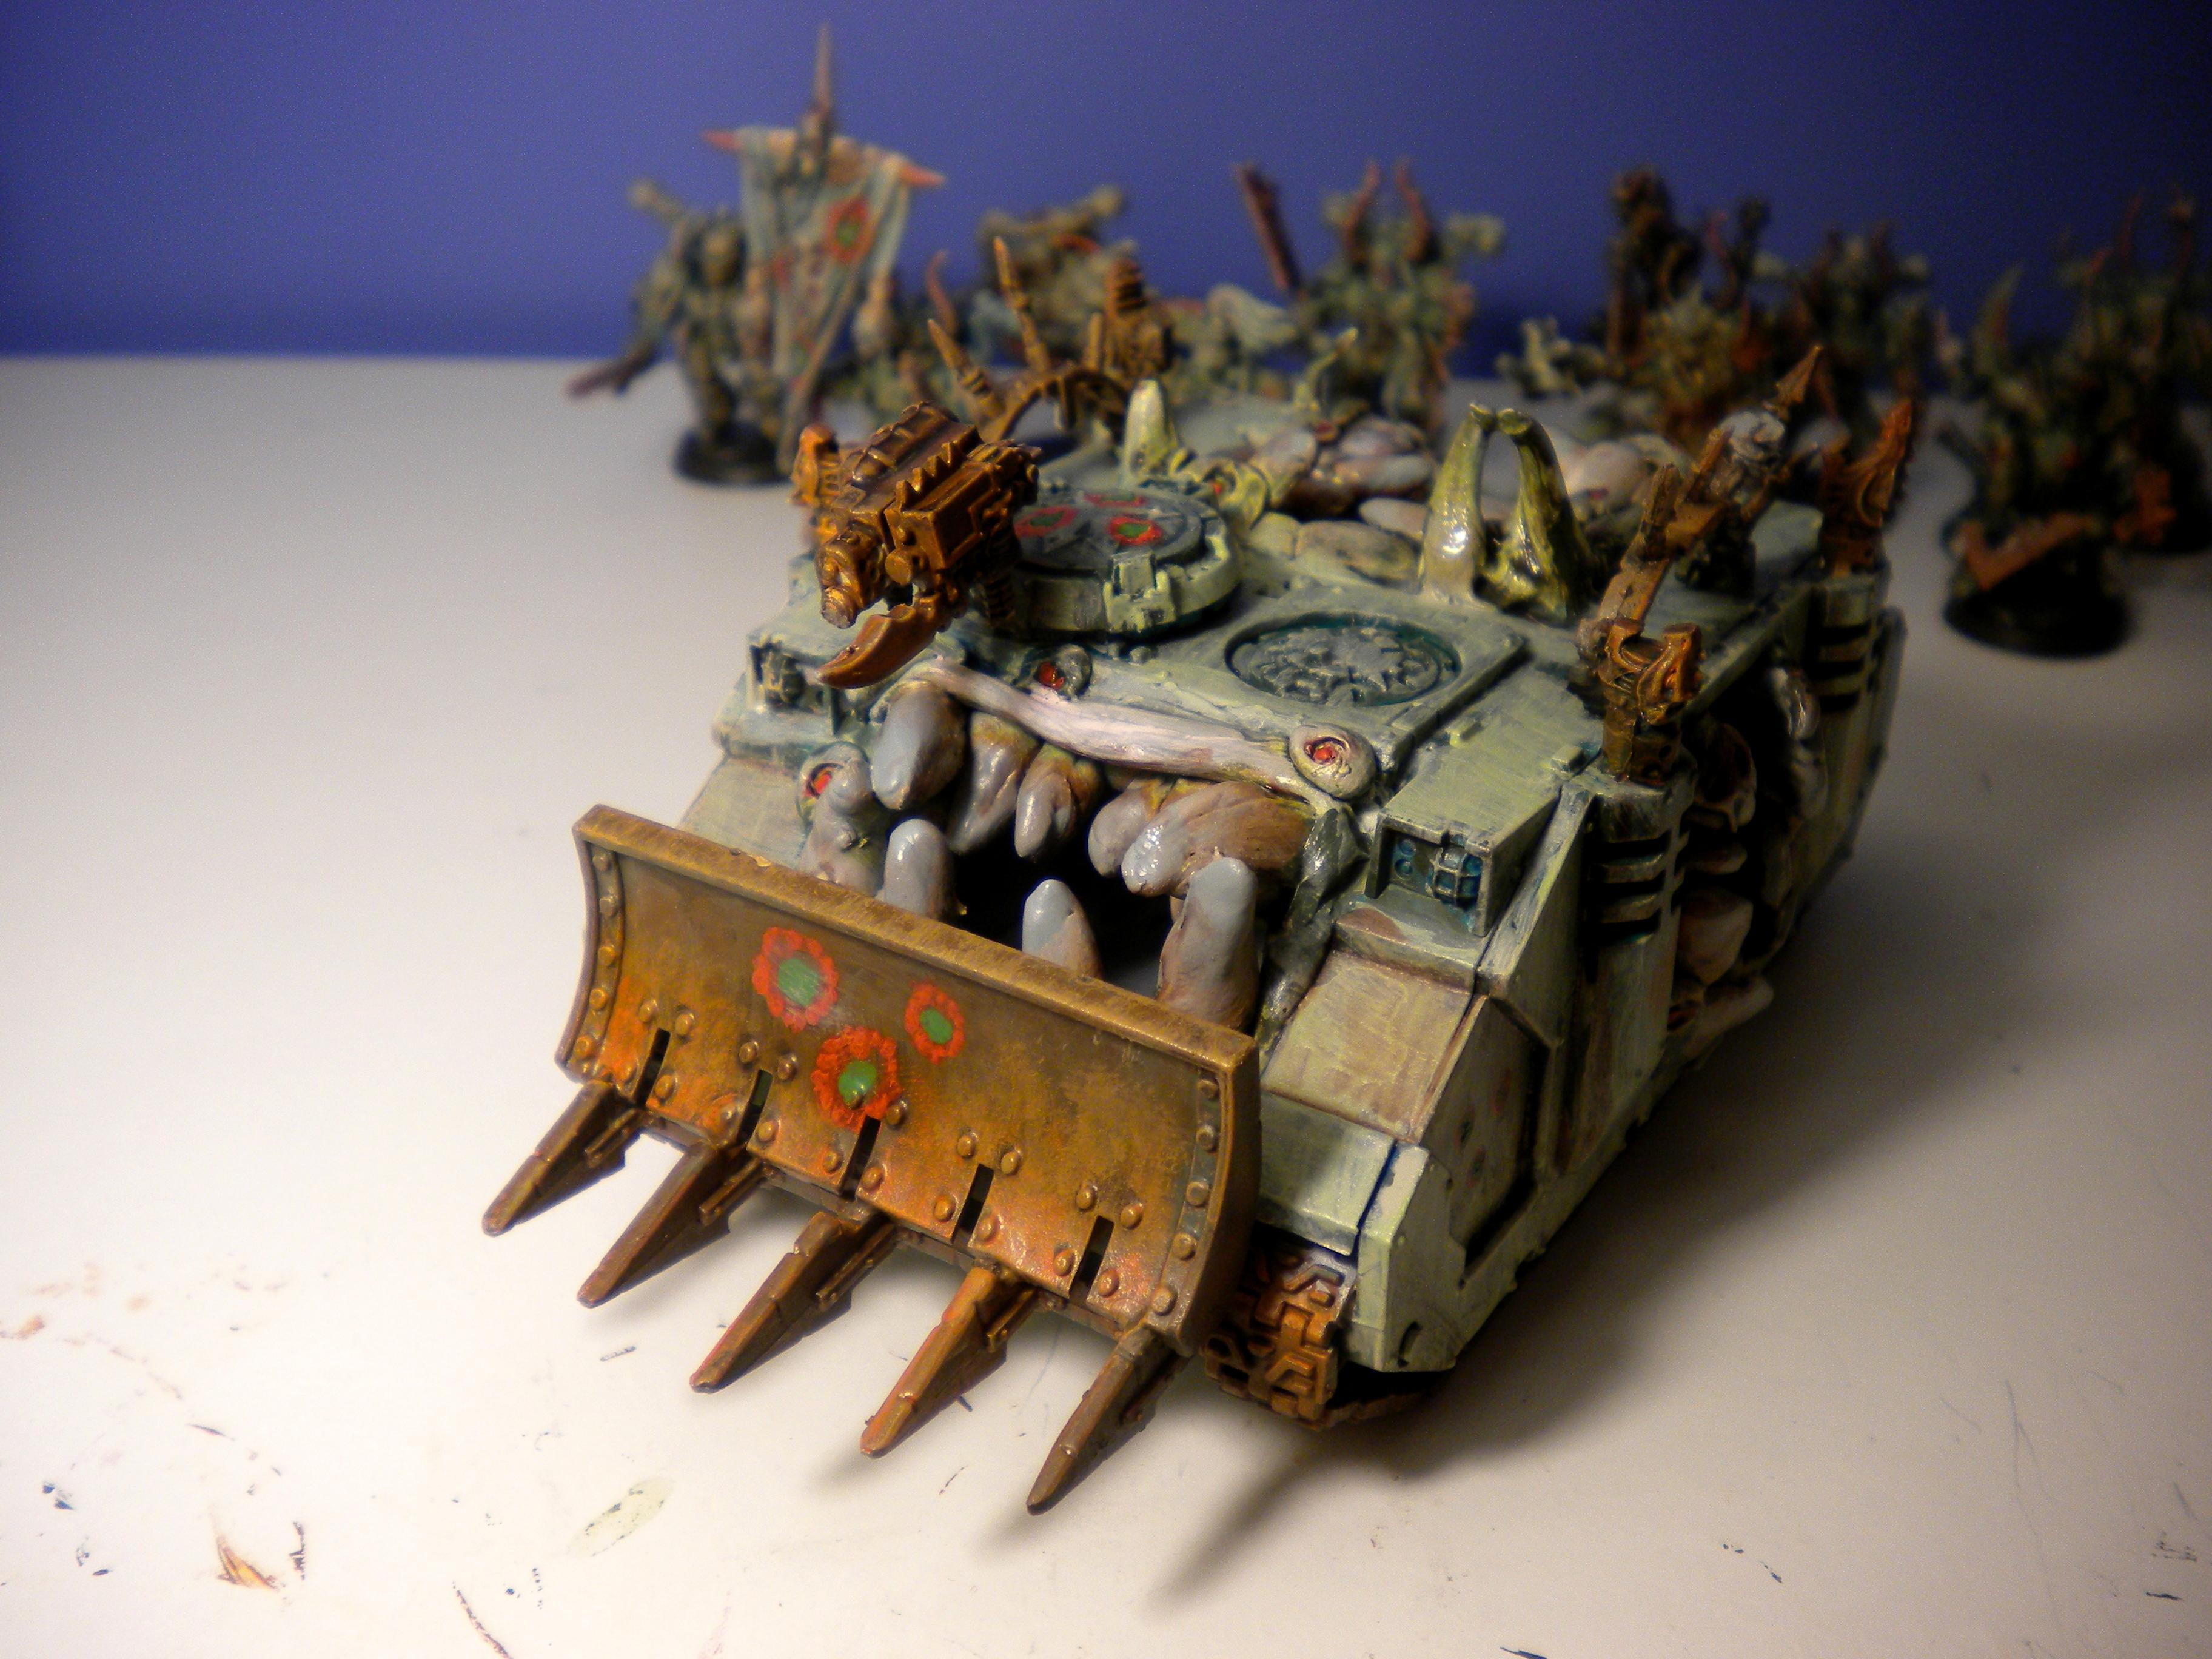 Chaos, Chaos Army, Chaos Rhino, Chaos Space Marines, Conversion, Daemon Prince, Defiler, Nurgle, Nurgle Army, Painted Chaos, Plague Marines